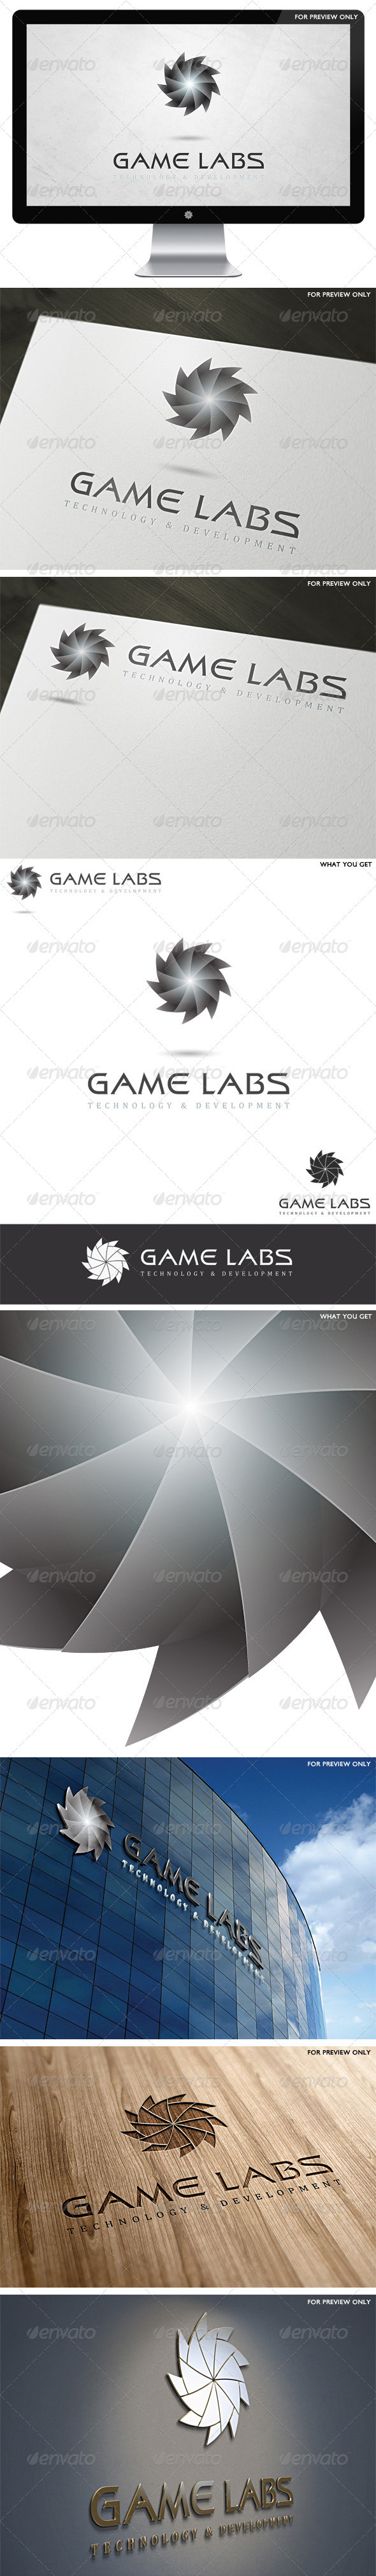 GraphicRiver 3D Game Labs Logo Template v2 4570294